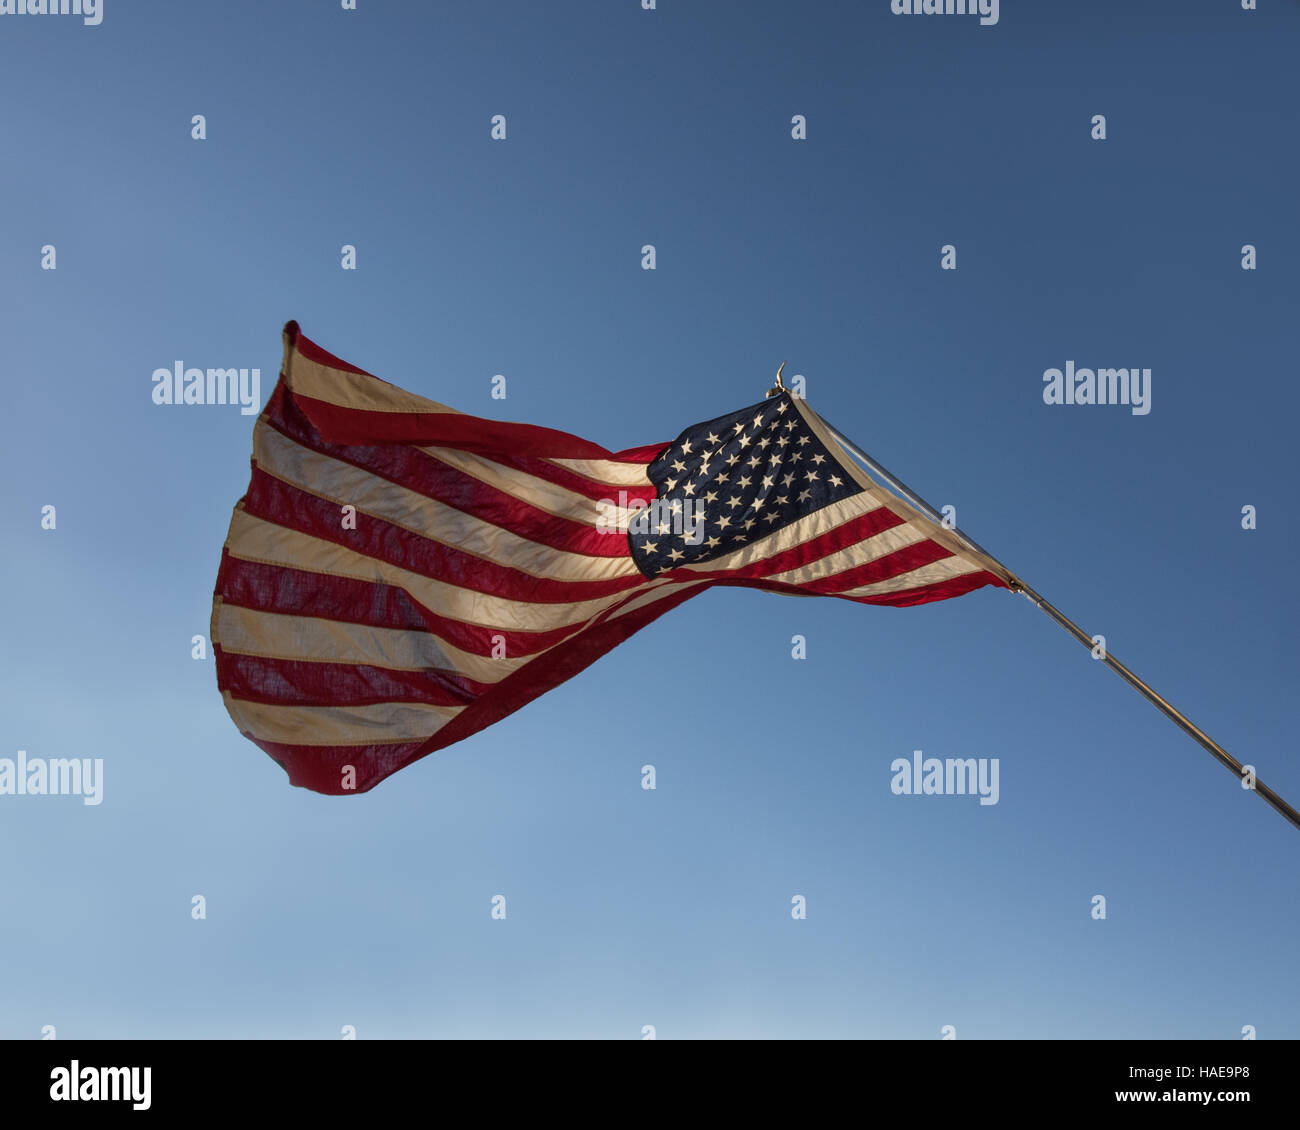 American flag ruffled, in shadow and light. Not fully unfurled. Representing a nation in turmoil. - Stock Image